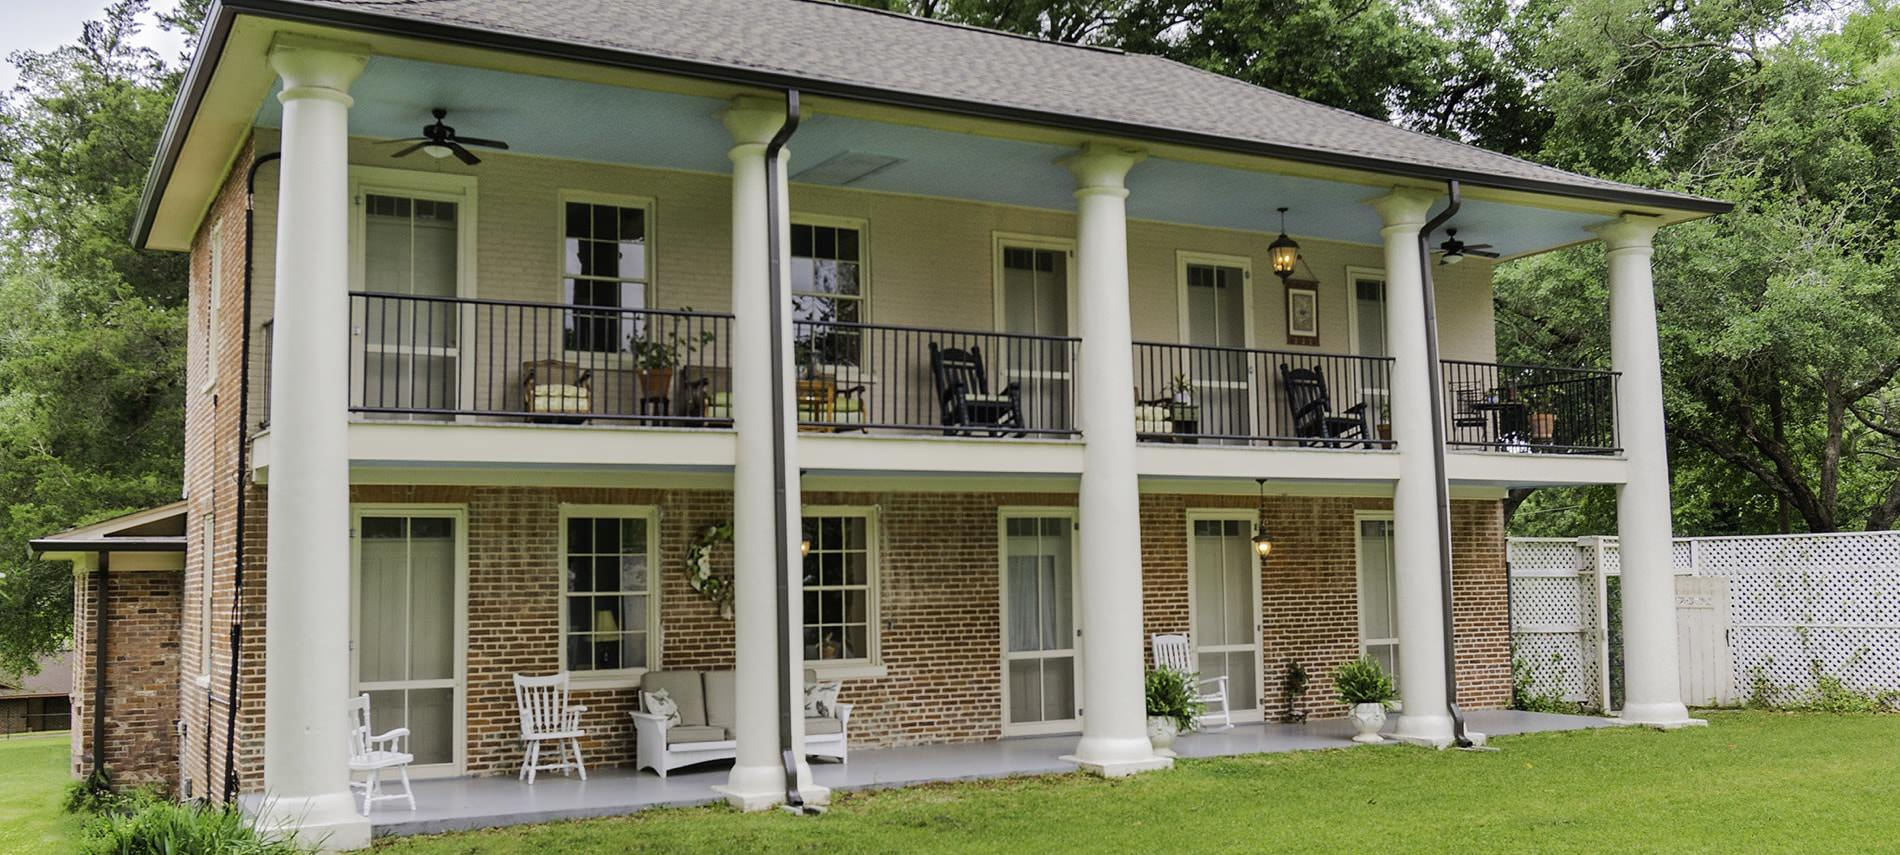 Rear view of the b&b with wide open porch spaces, various chairs and plants, and many windows with a green lawn